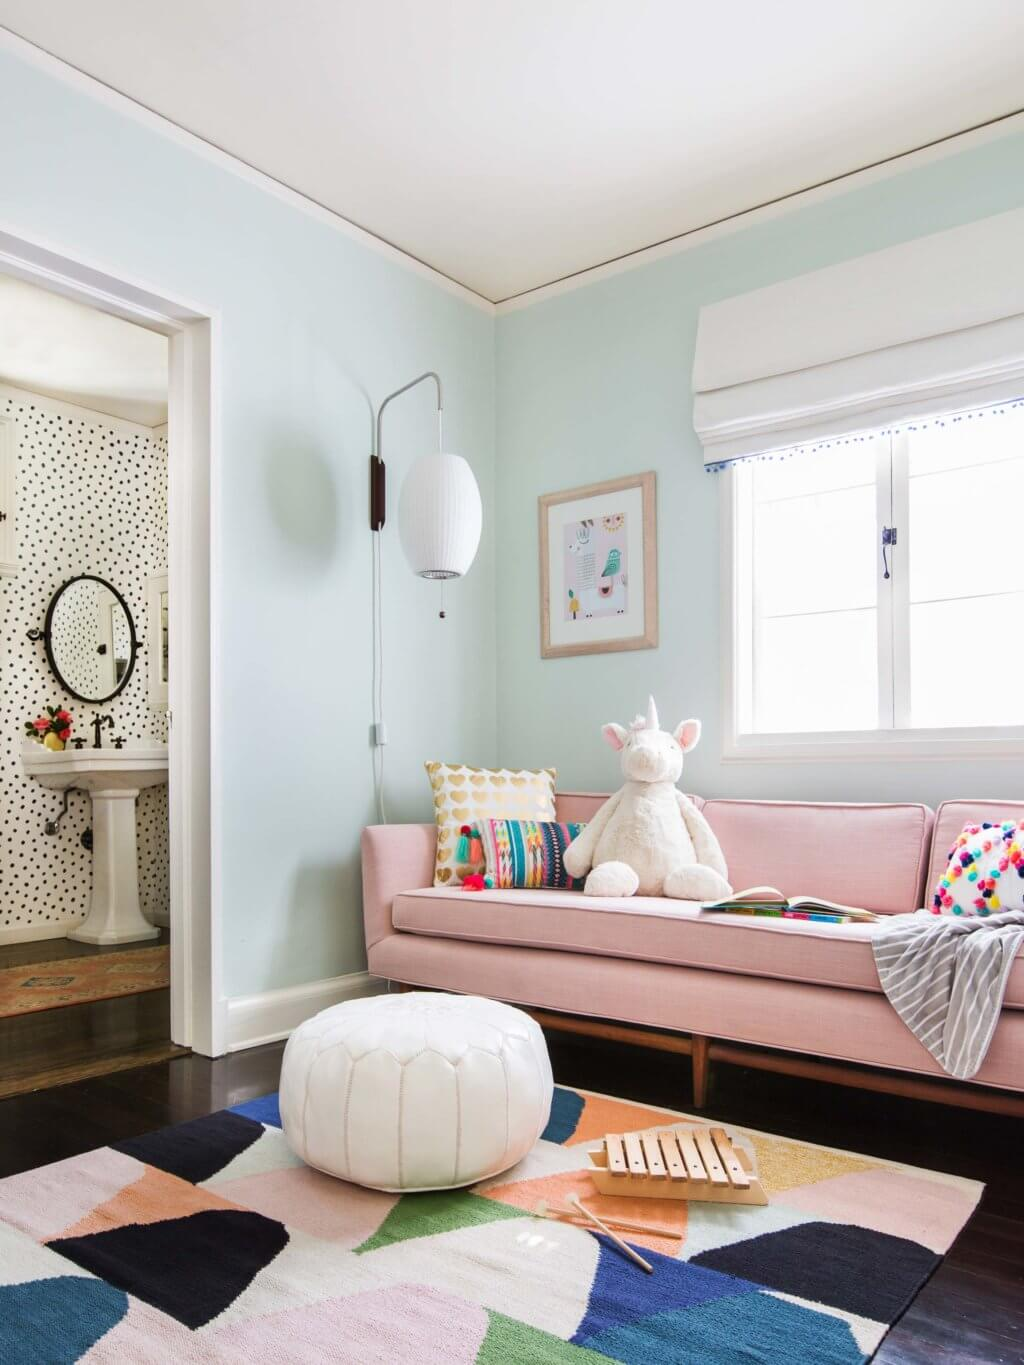 02_Ginny_Macdonald_Full-Design_Girls-Playroom_Whimsical_Pink_Playful